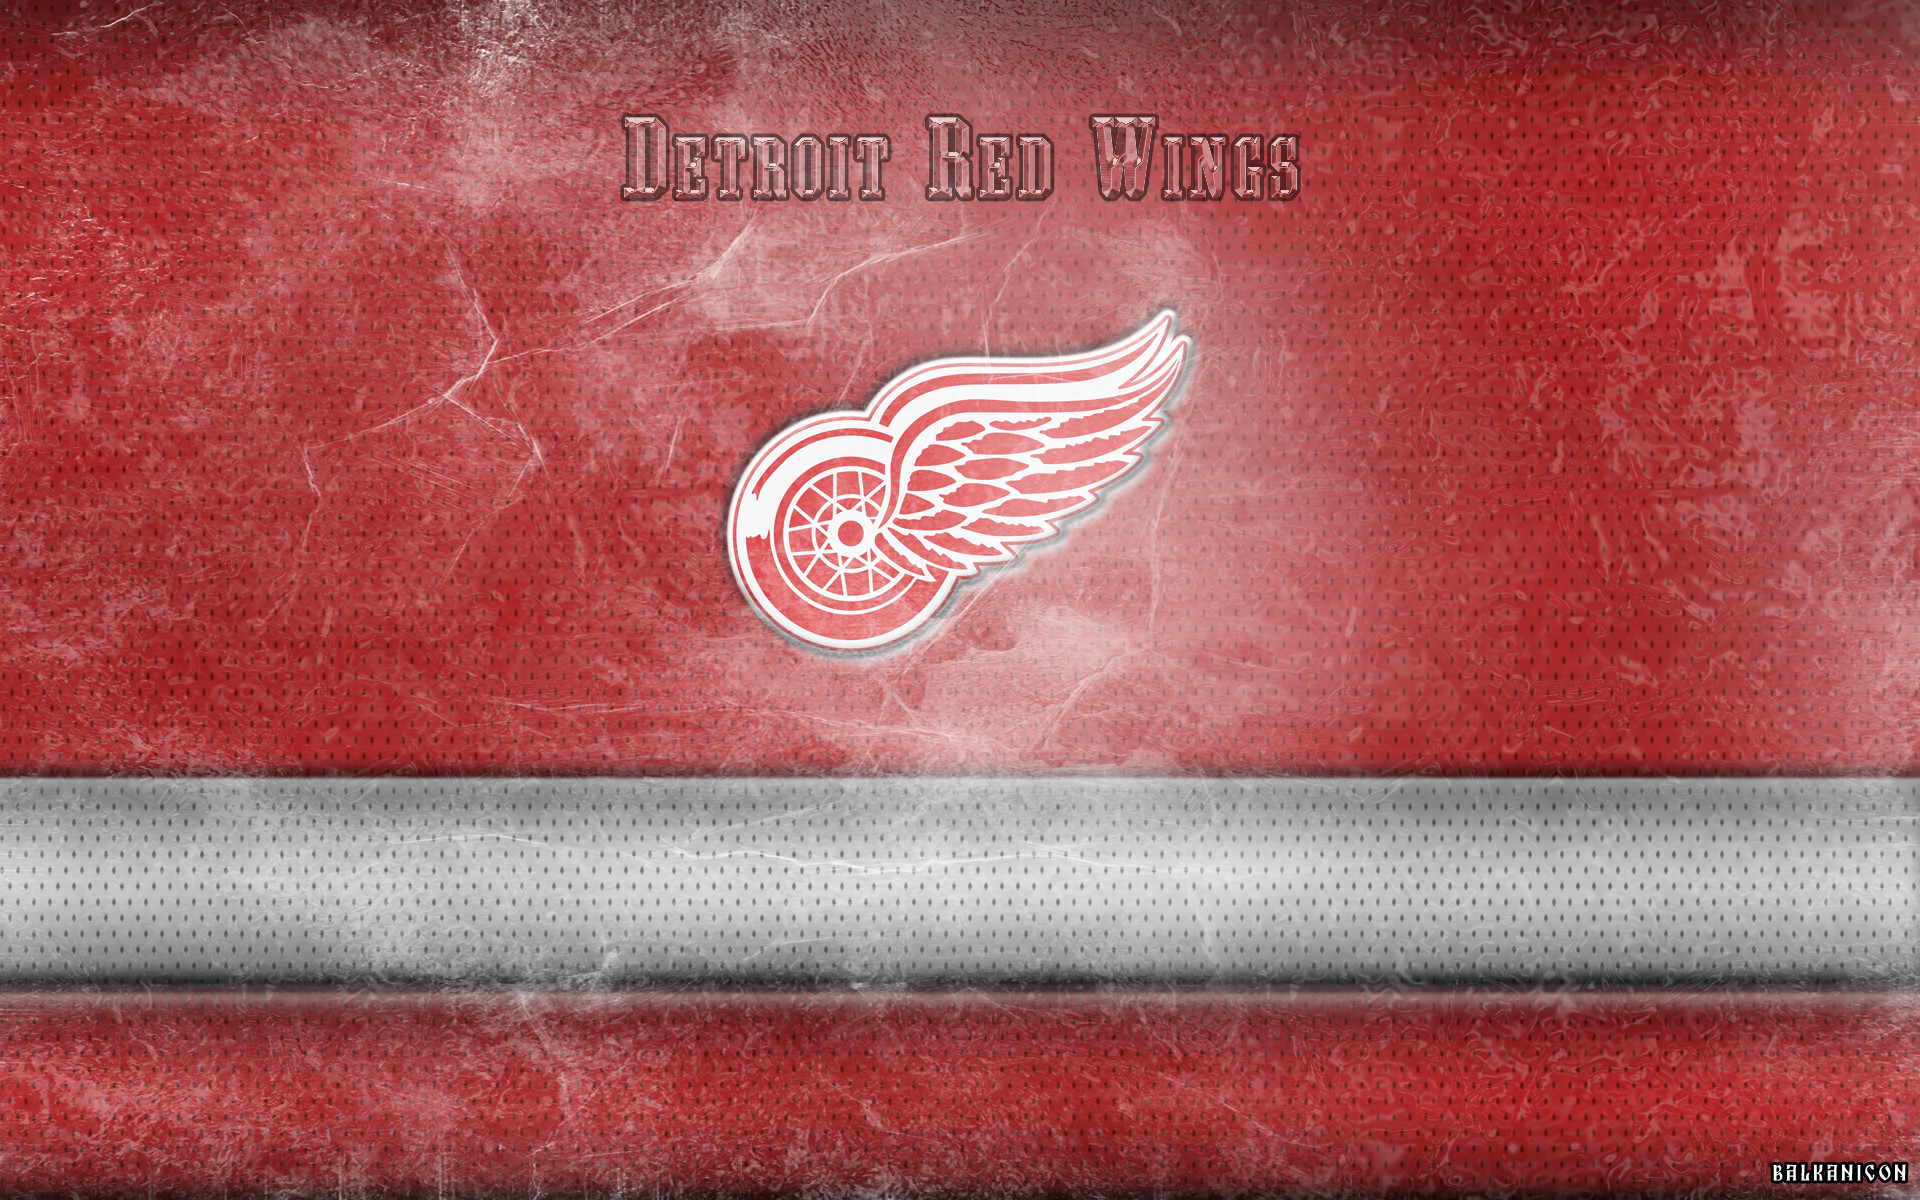 Red wing wallpaper 1920x1200 detroit red wings wallpaper by balkanicon detroit red wings wallpaper by balkanicon voltagebd Choice Image